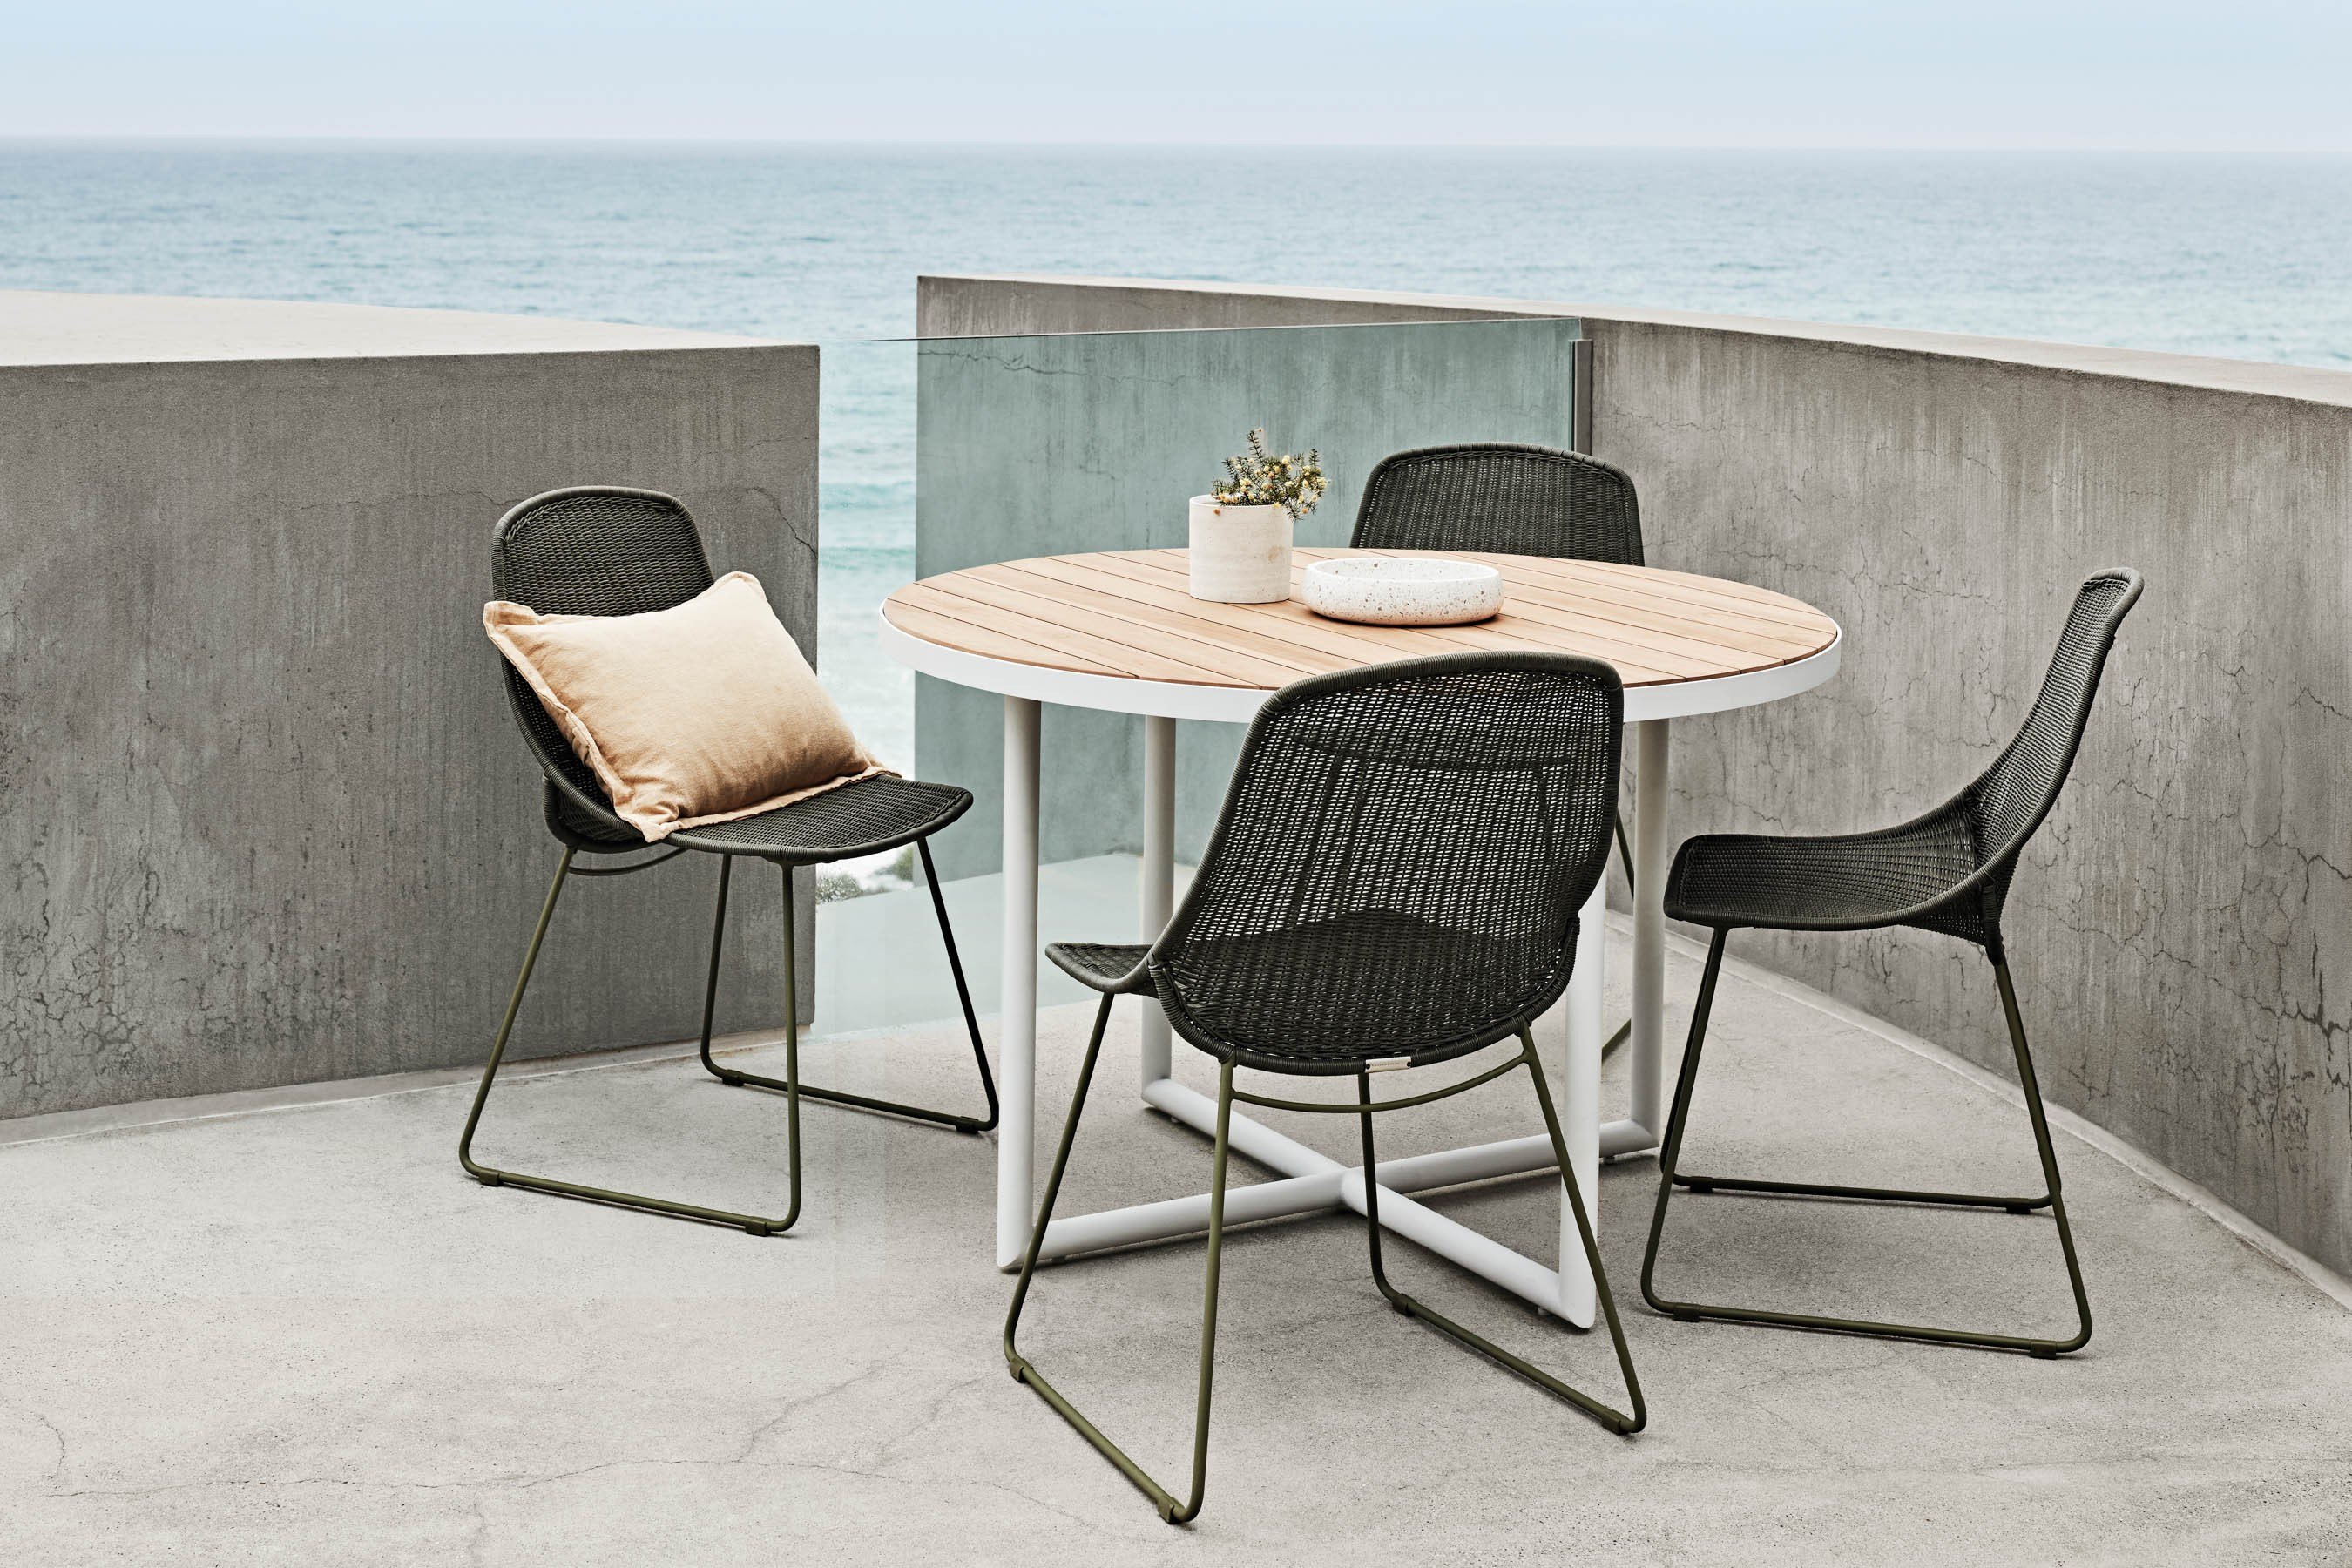 Furniture Gallery Dining-Chairs-Benches-Stools granada-scoop-closed-weave-dining-chairs-02